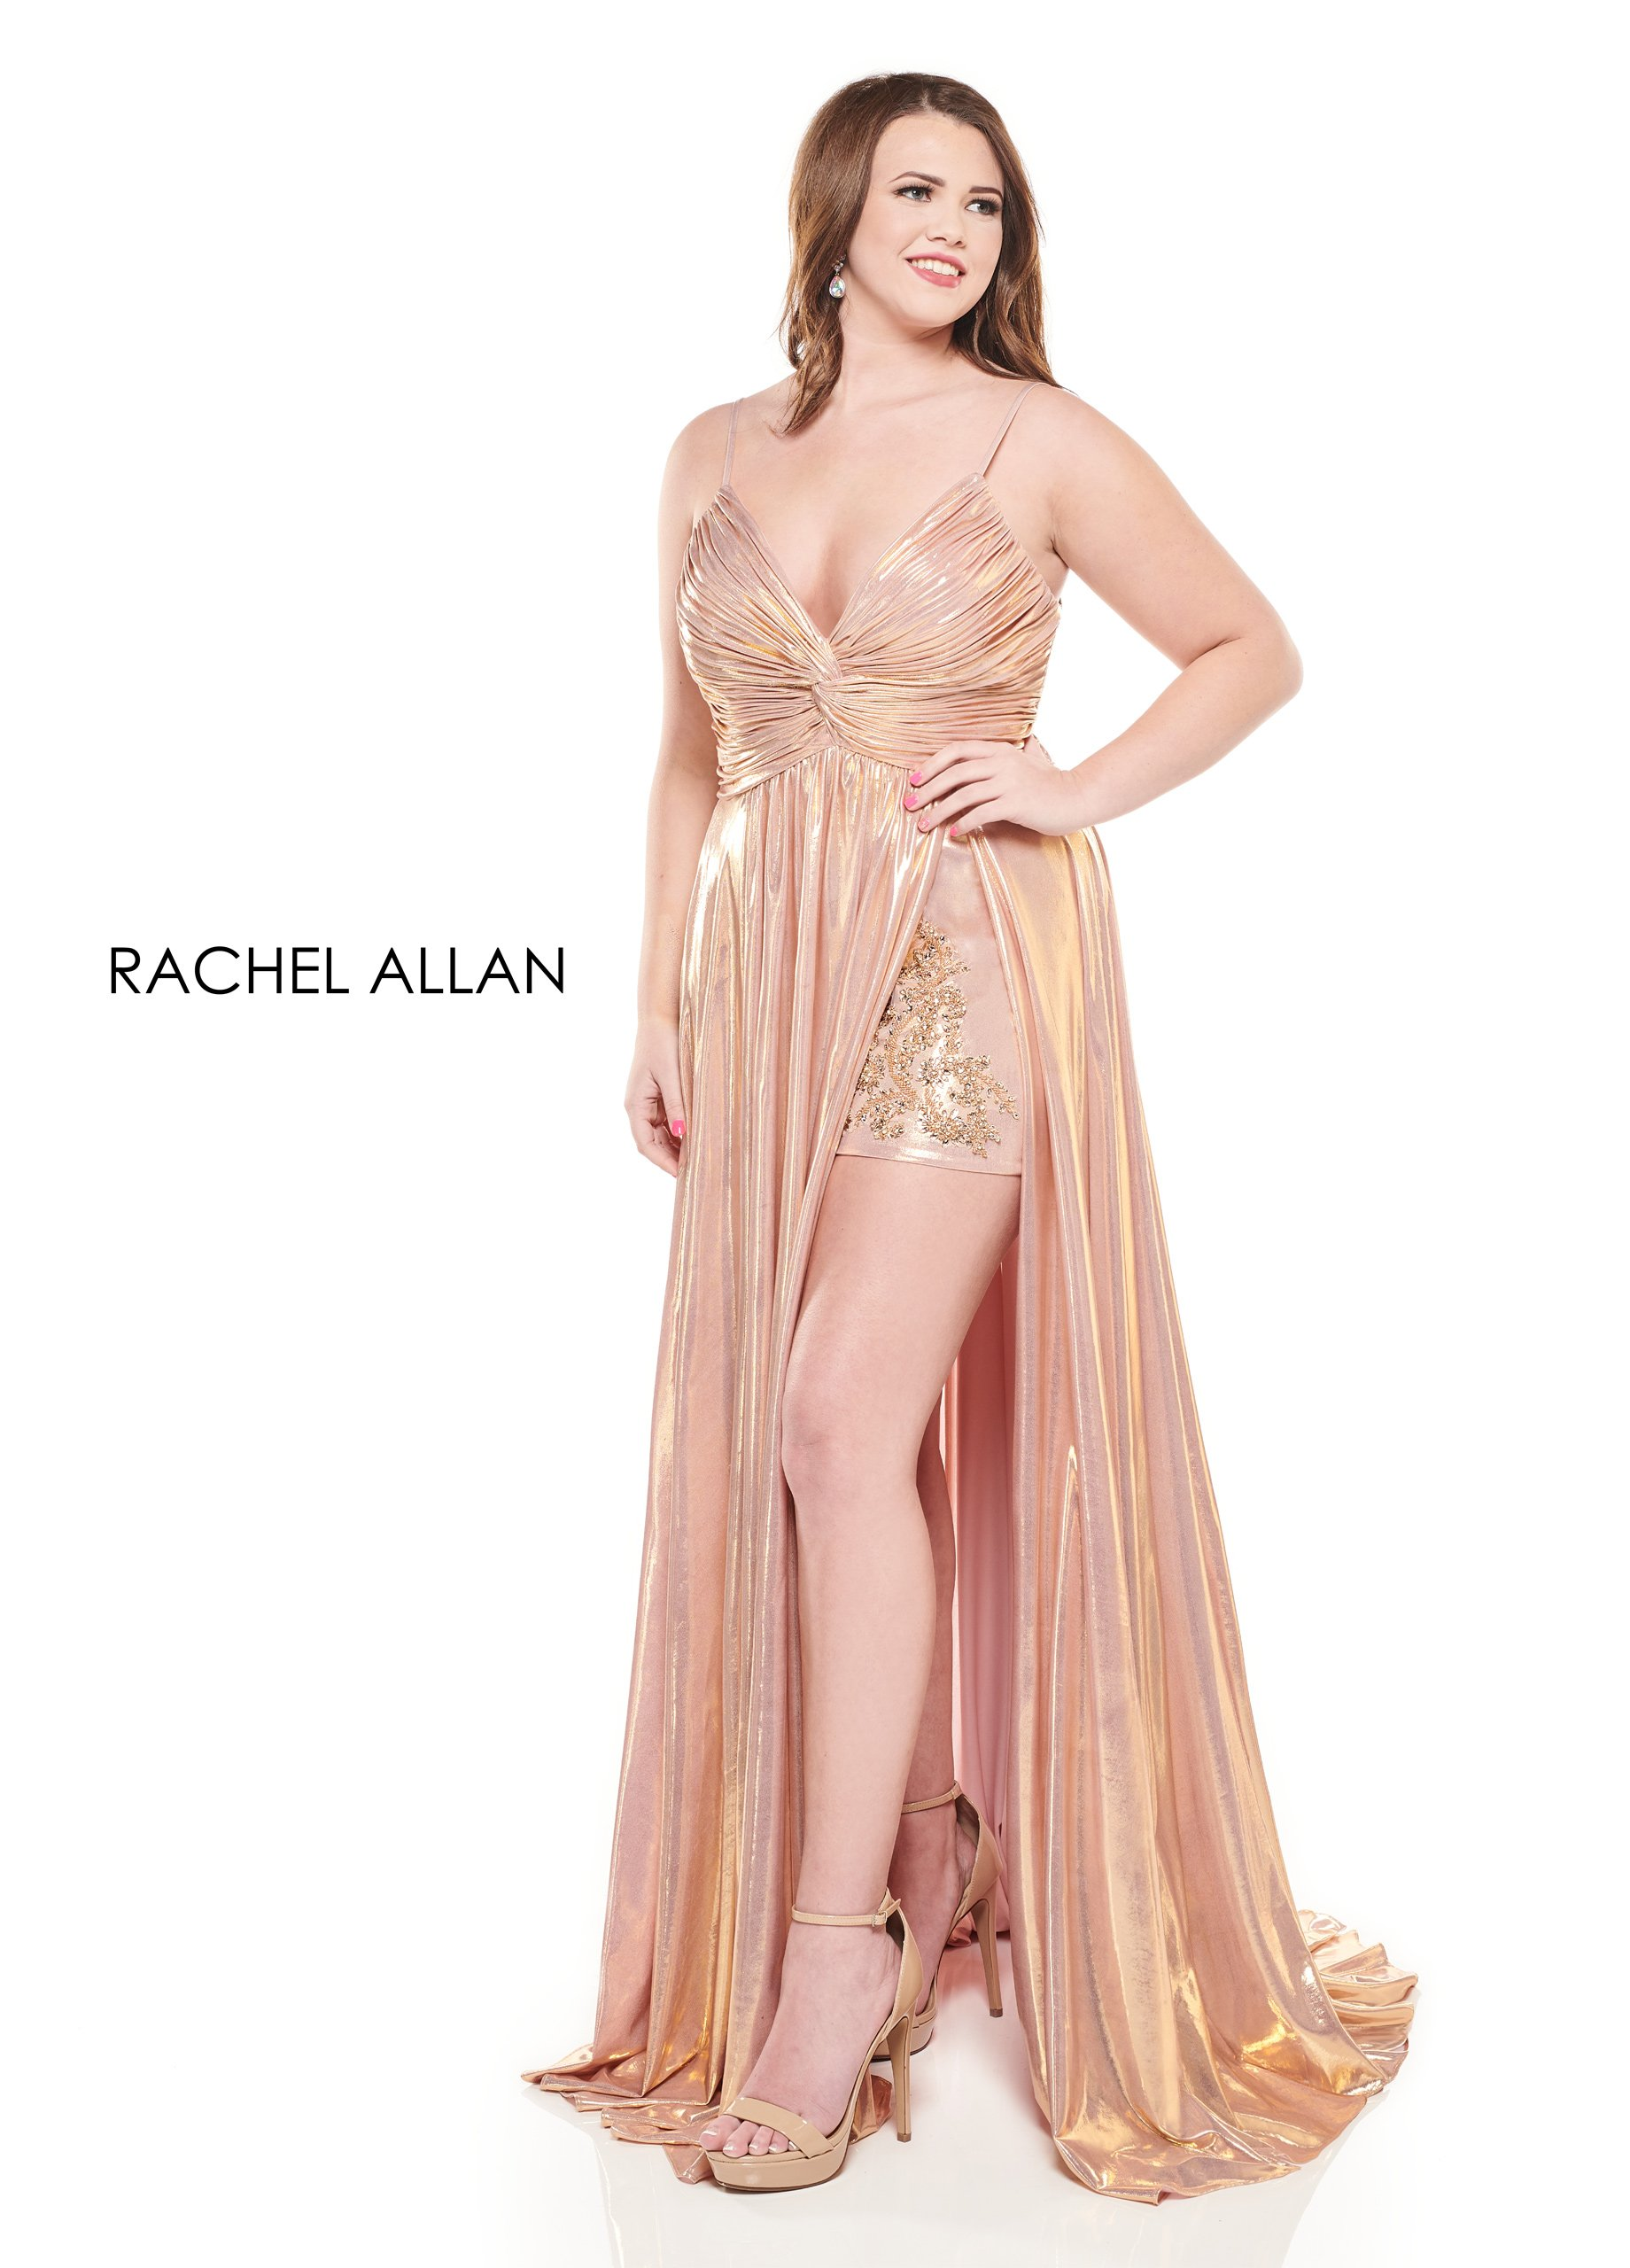 V-Neck Shorts With Overlay Homecoming Curves in Rose Gold Color